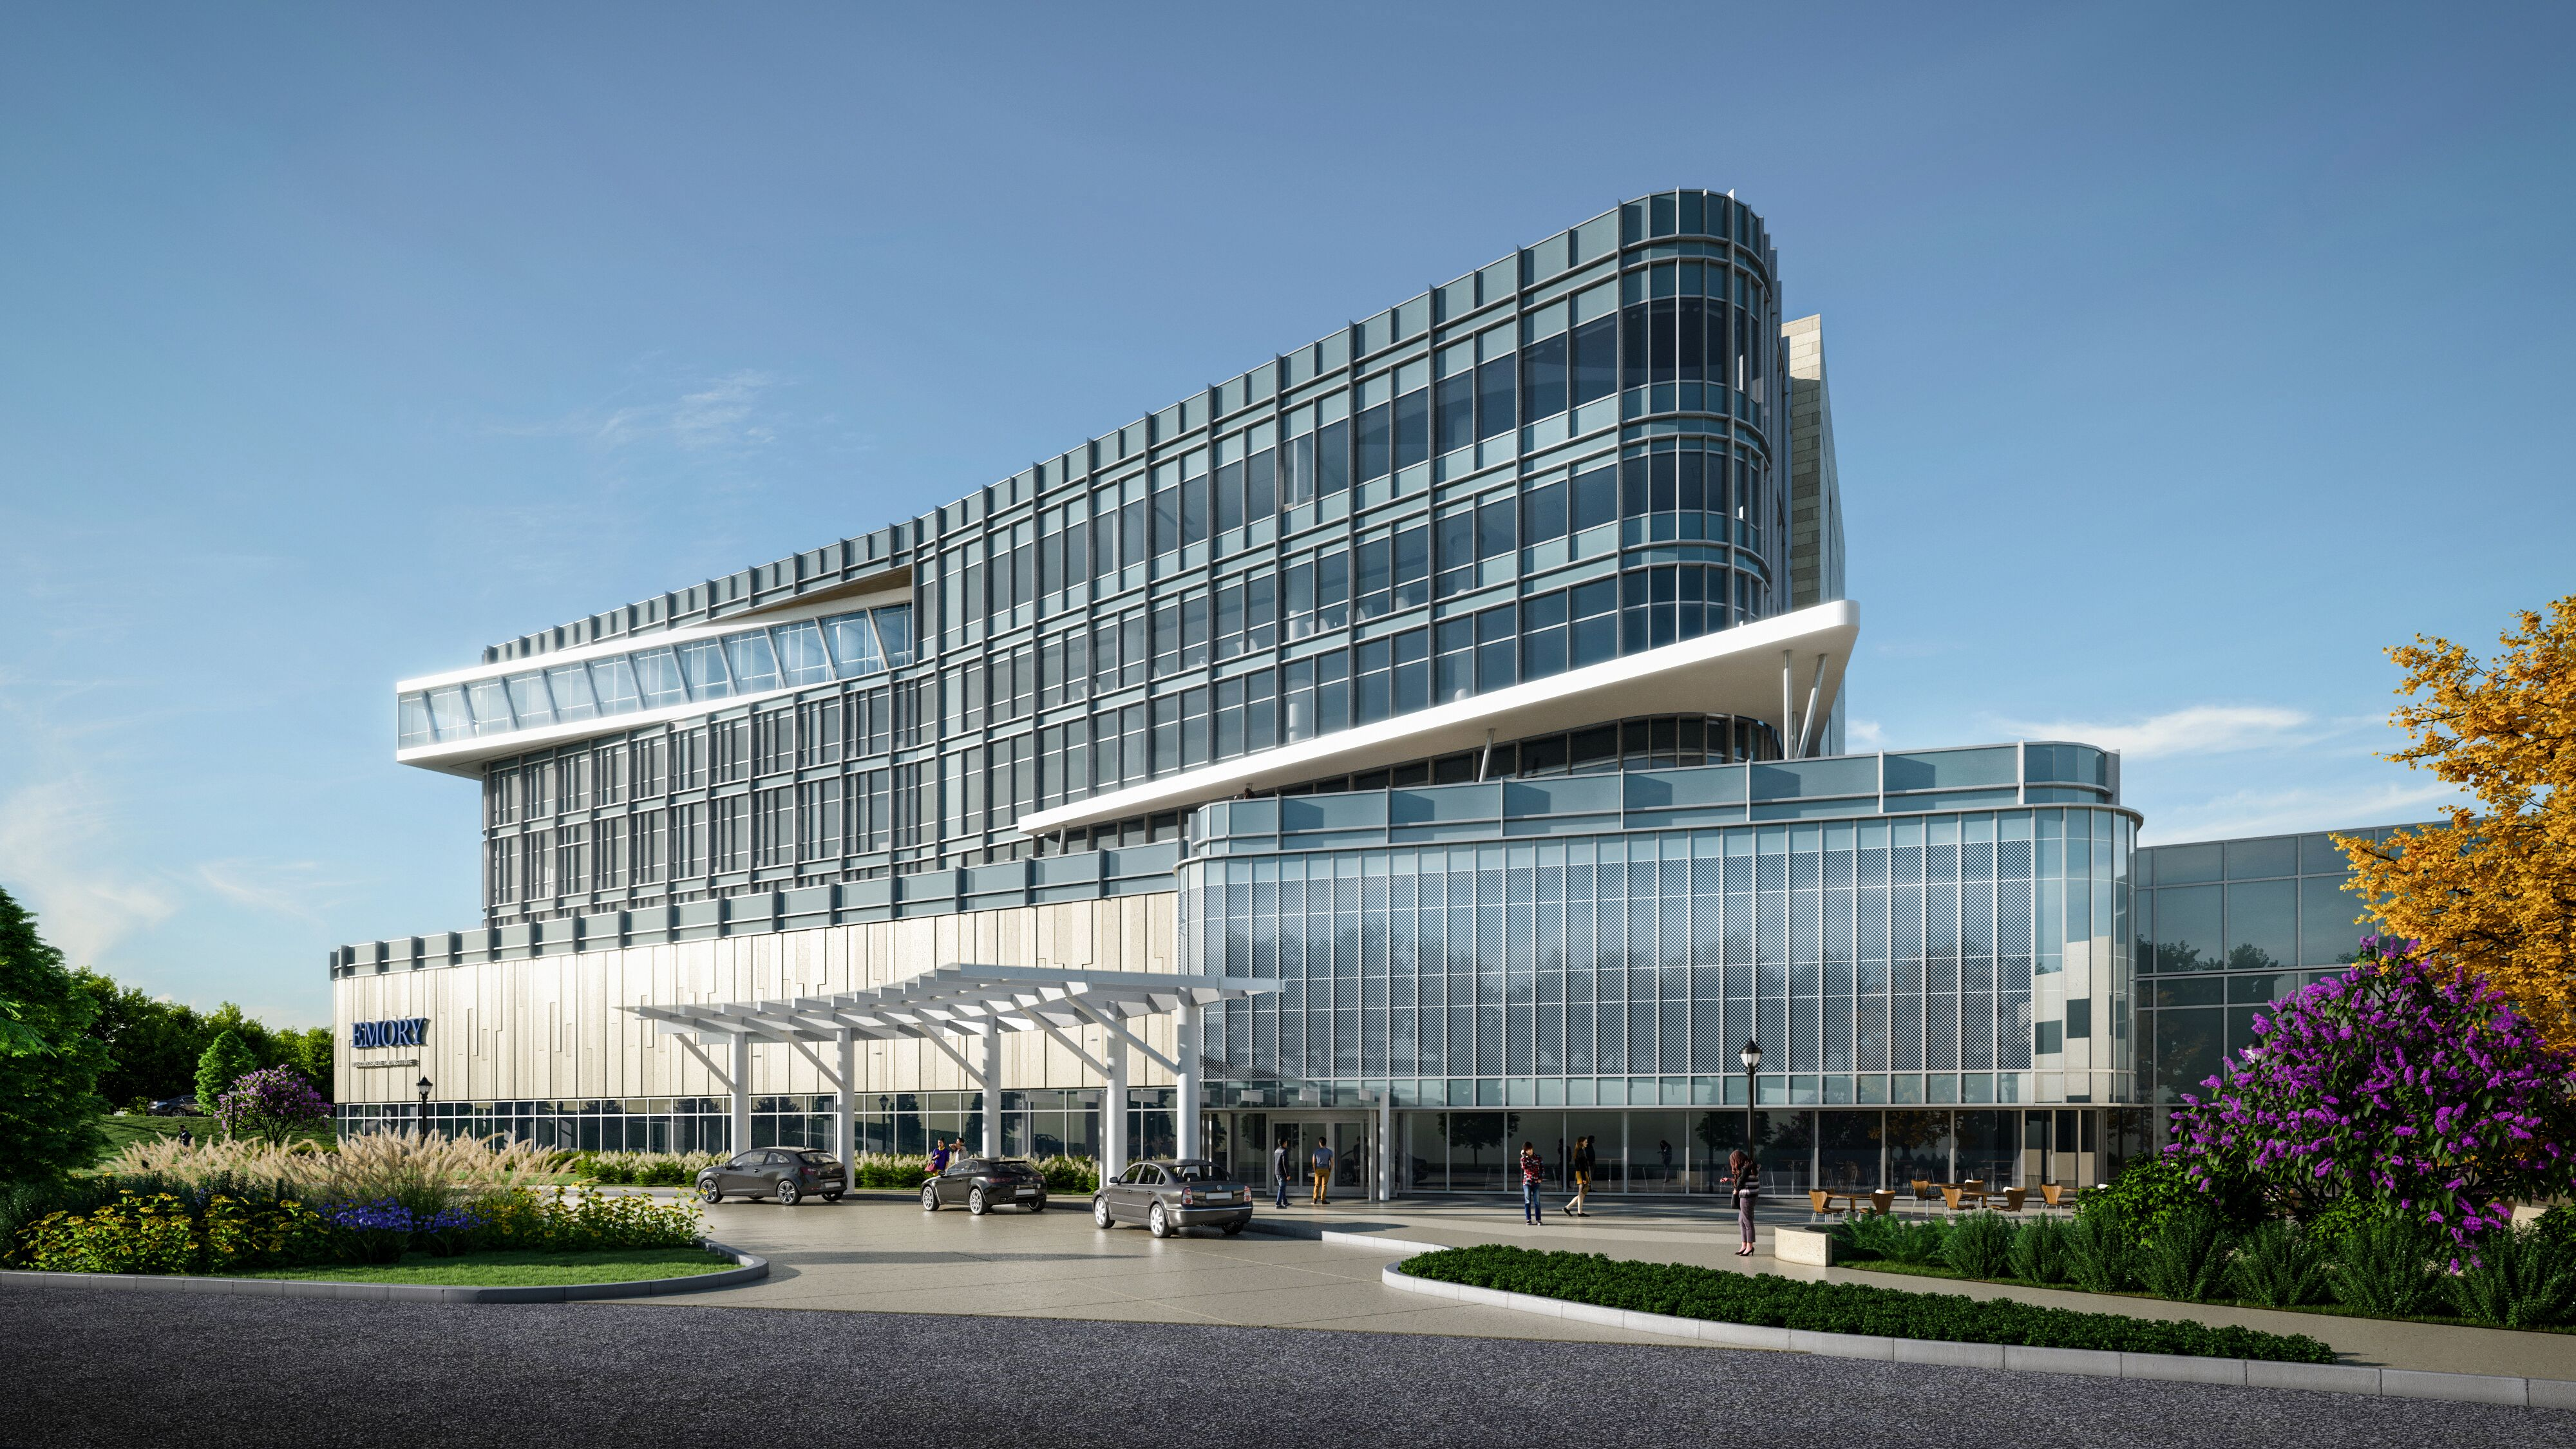 Emory breaks ground on latest facility, looks to make architectural statement near I-85